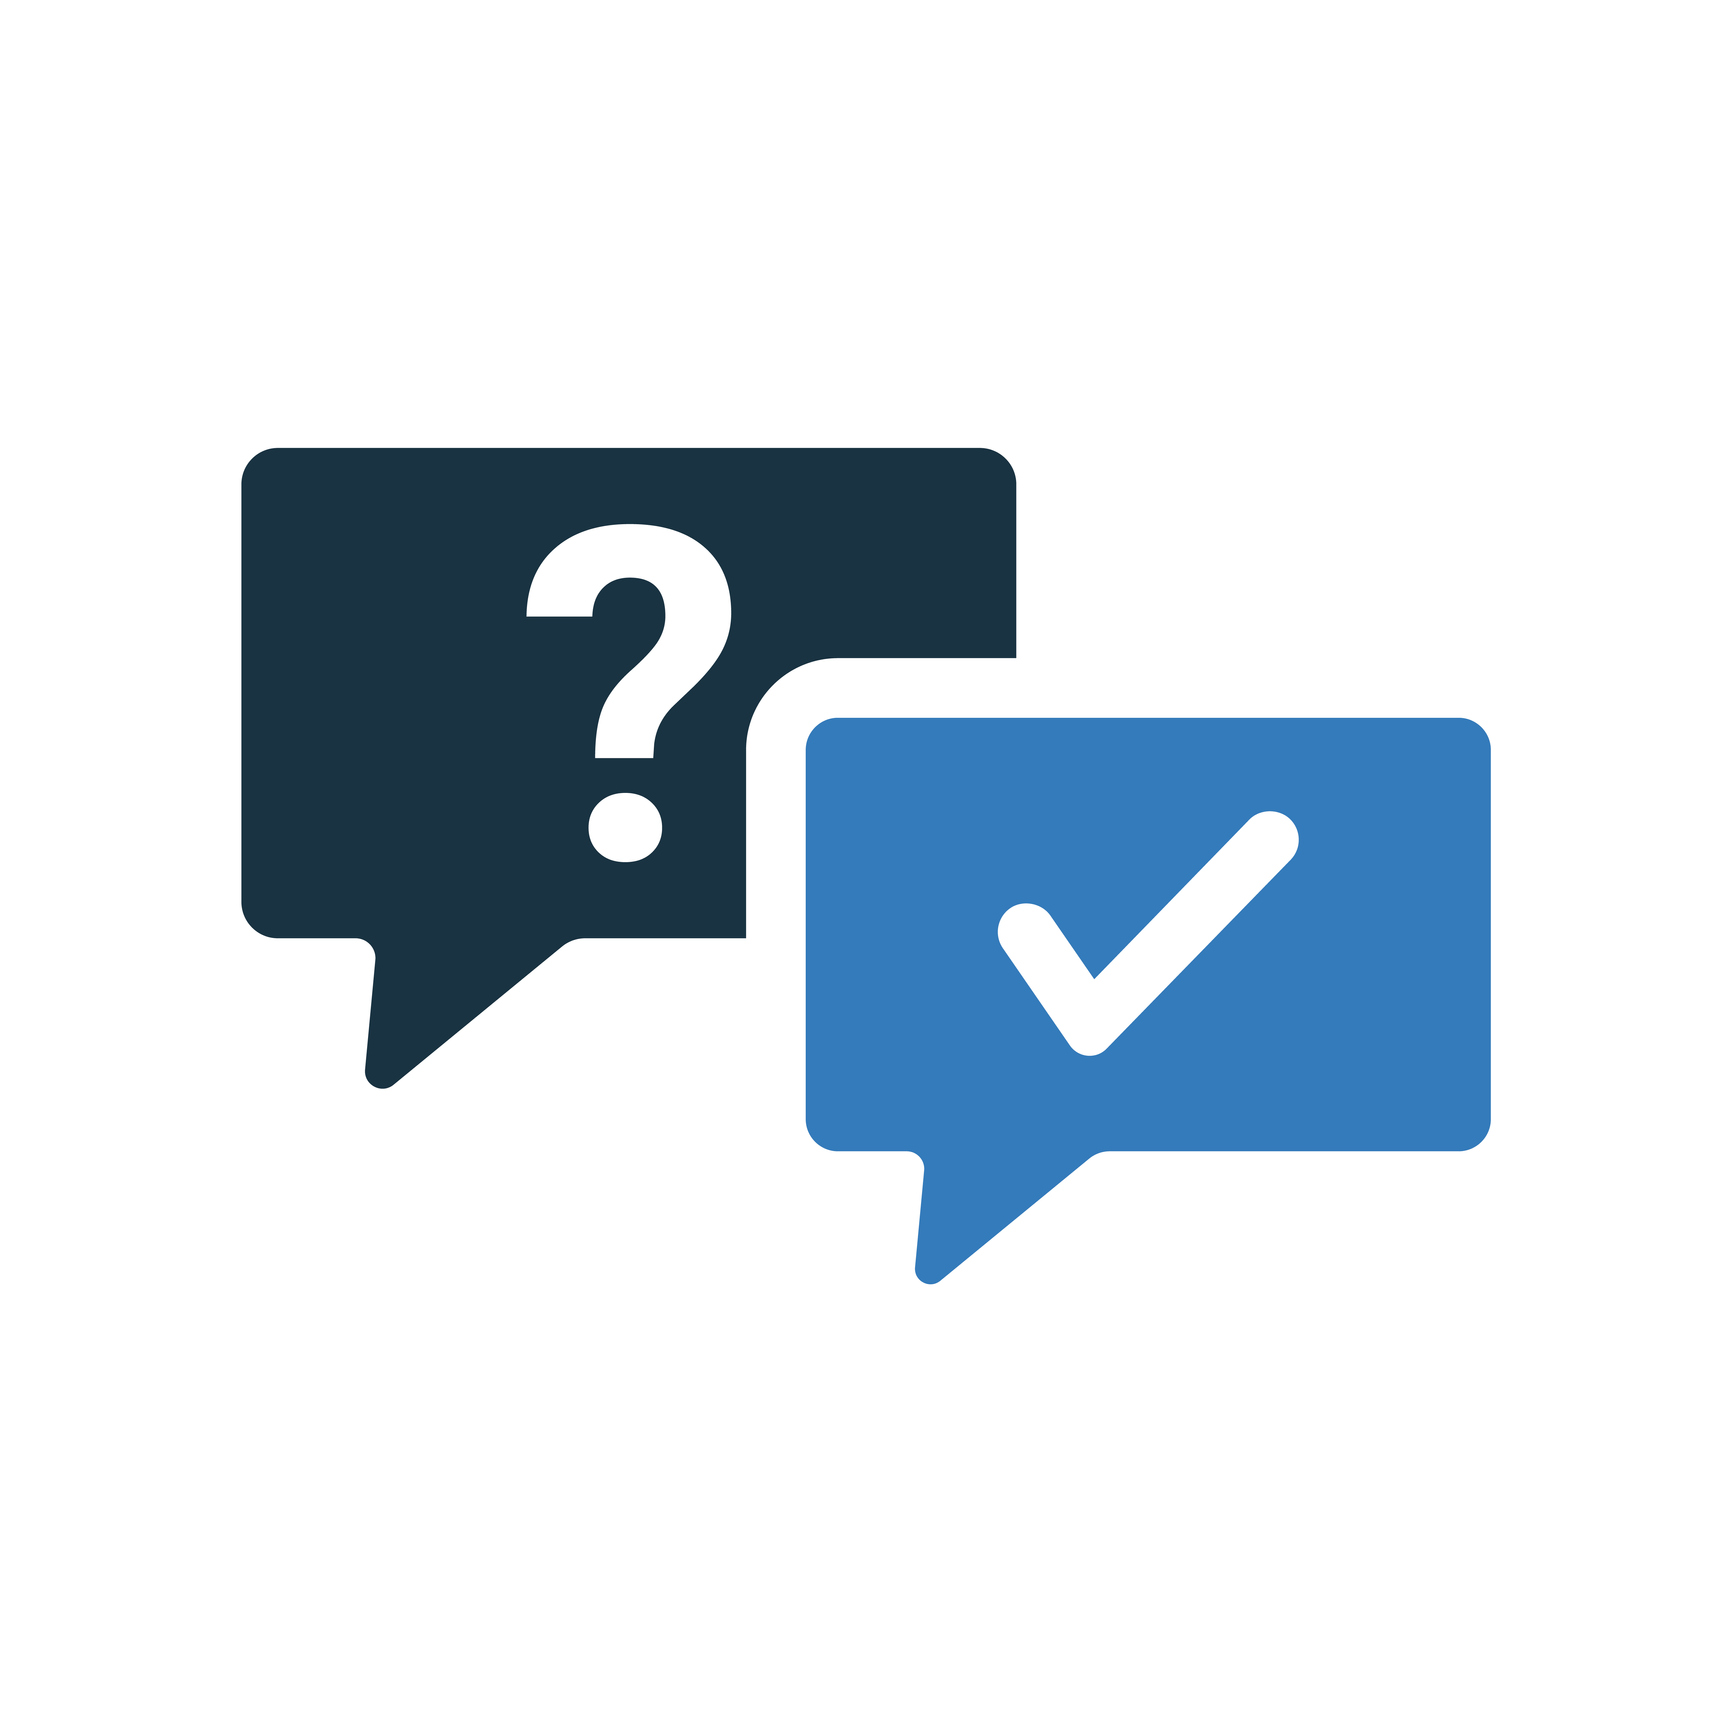 What is Considered a Good Response Rate to a Survey?